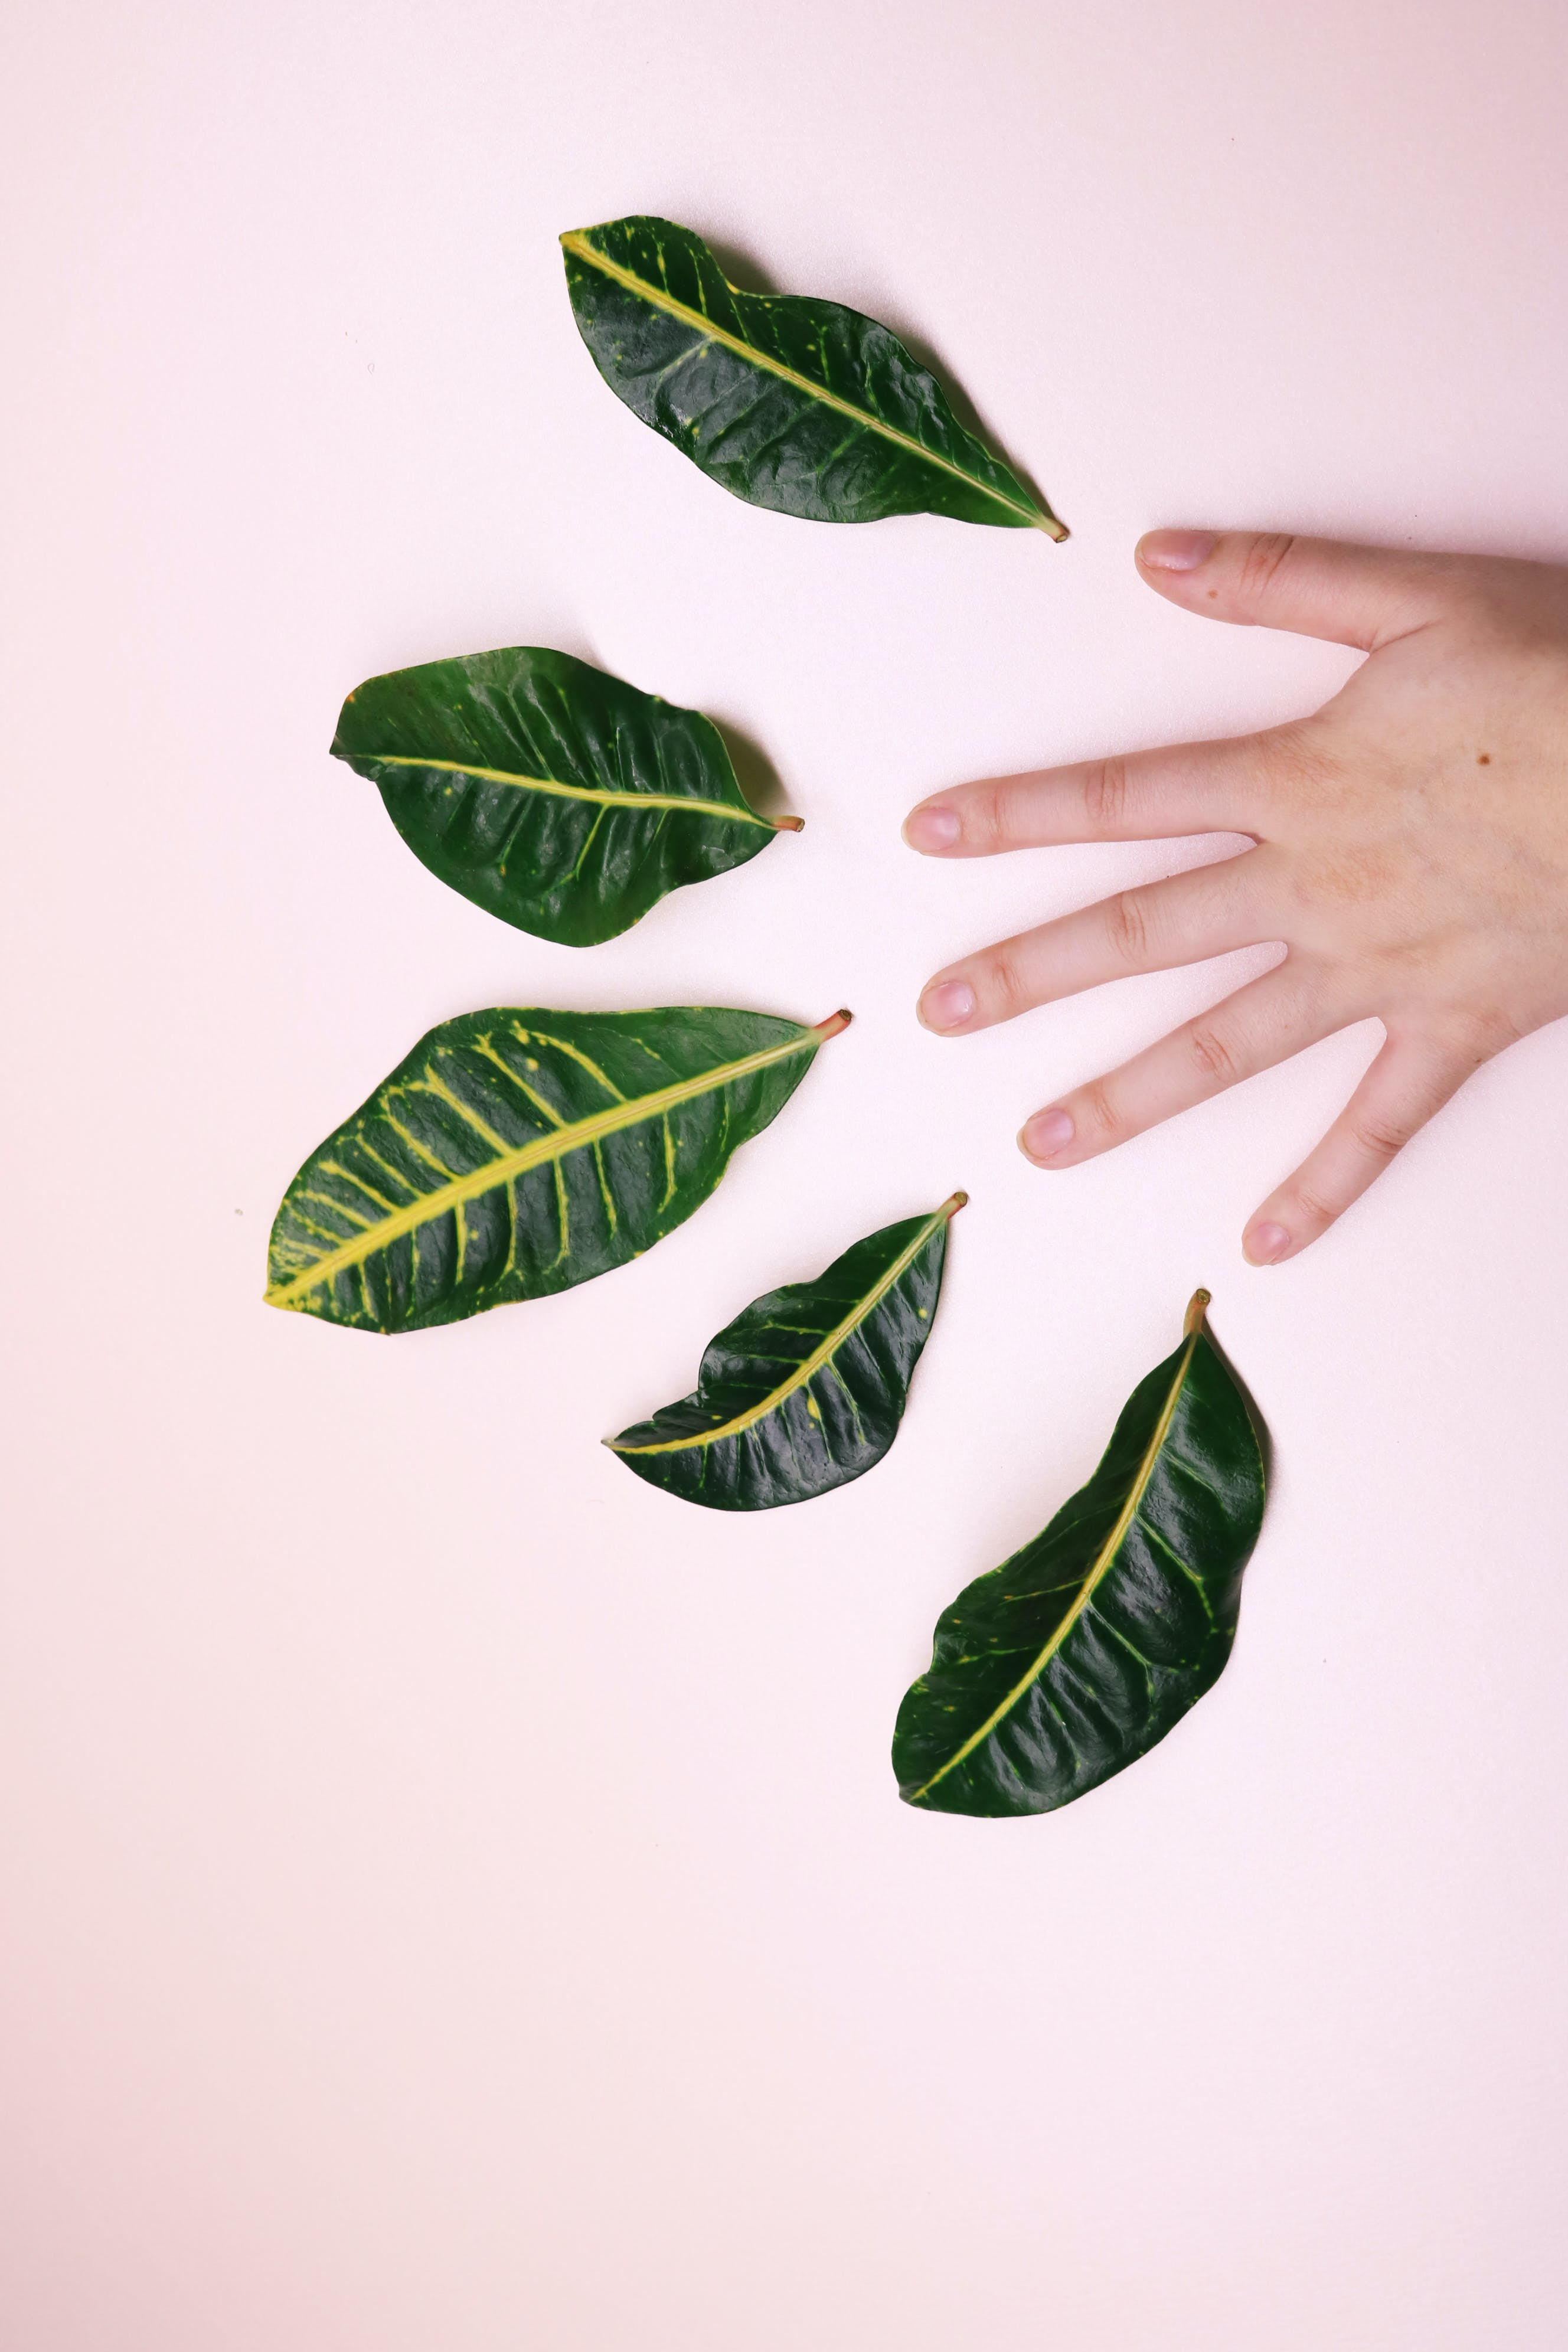 Human Hand and Five Leaves on White Surface